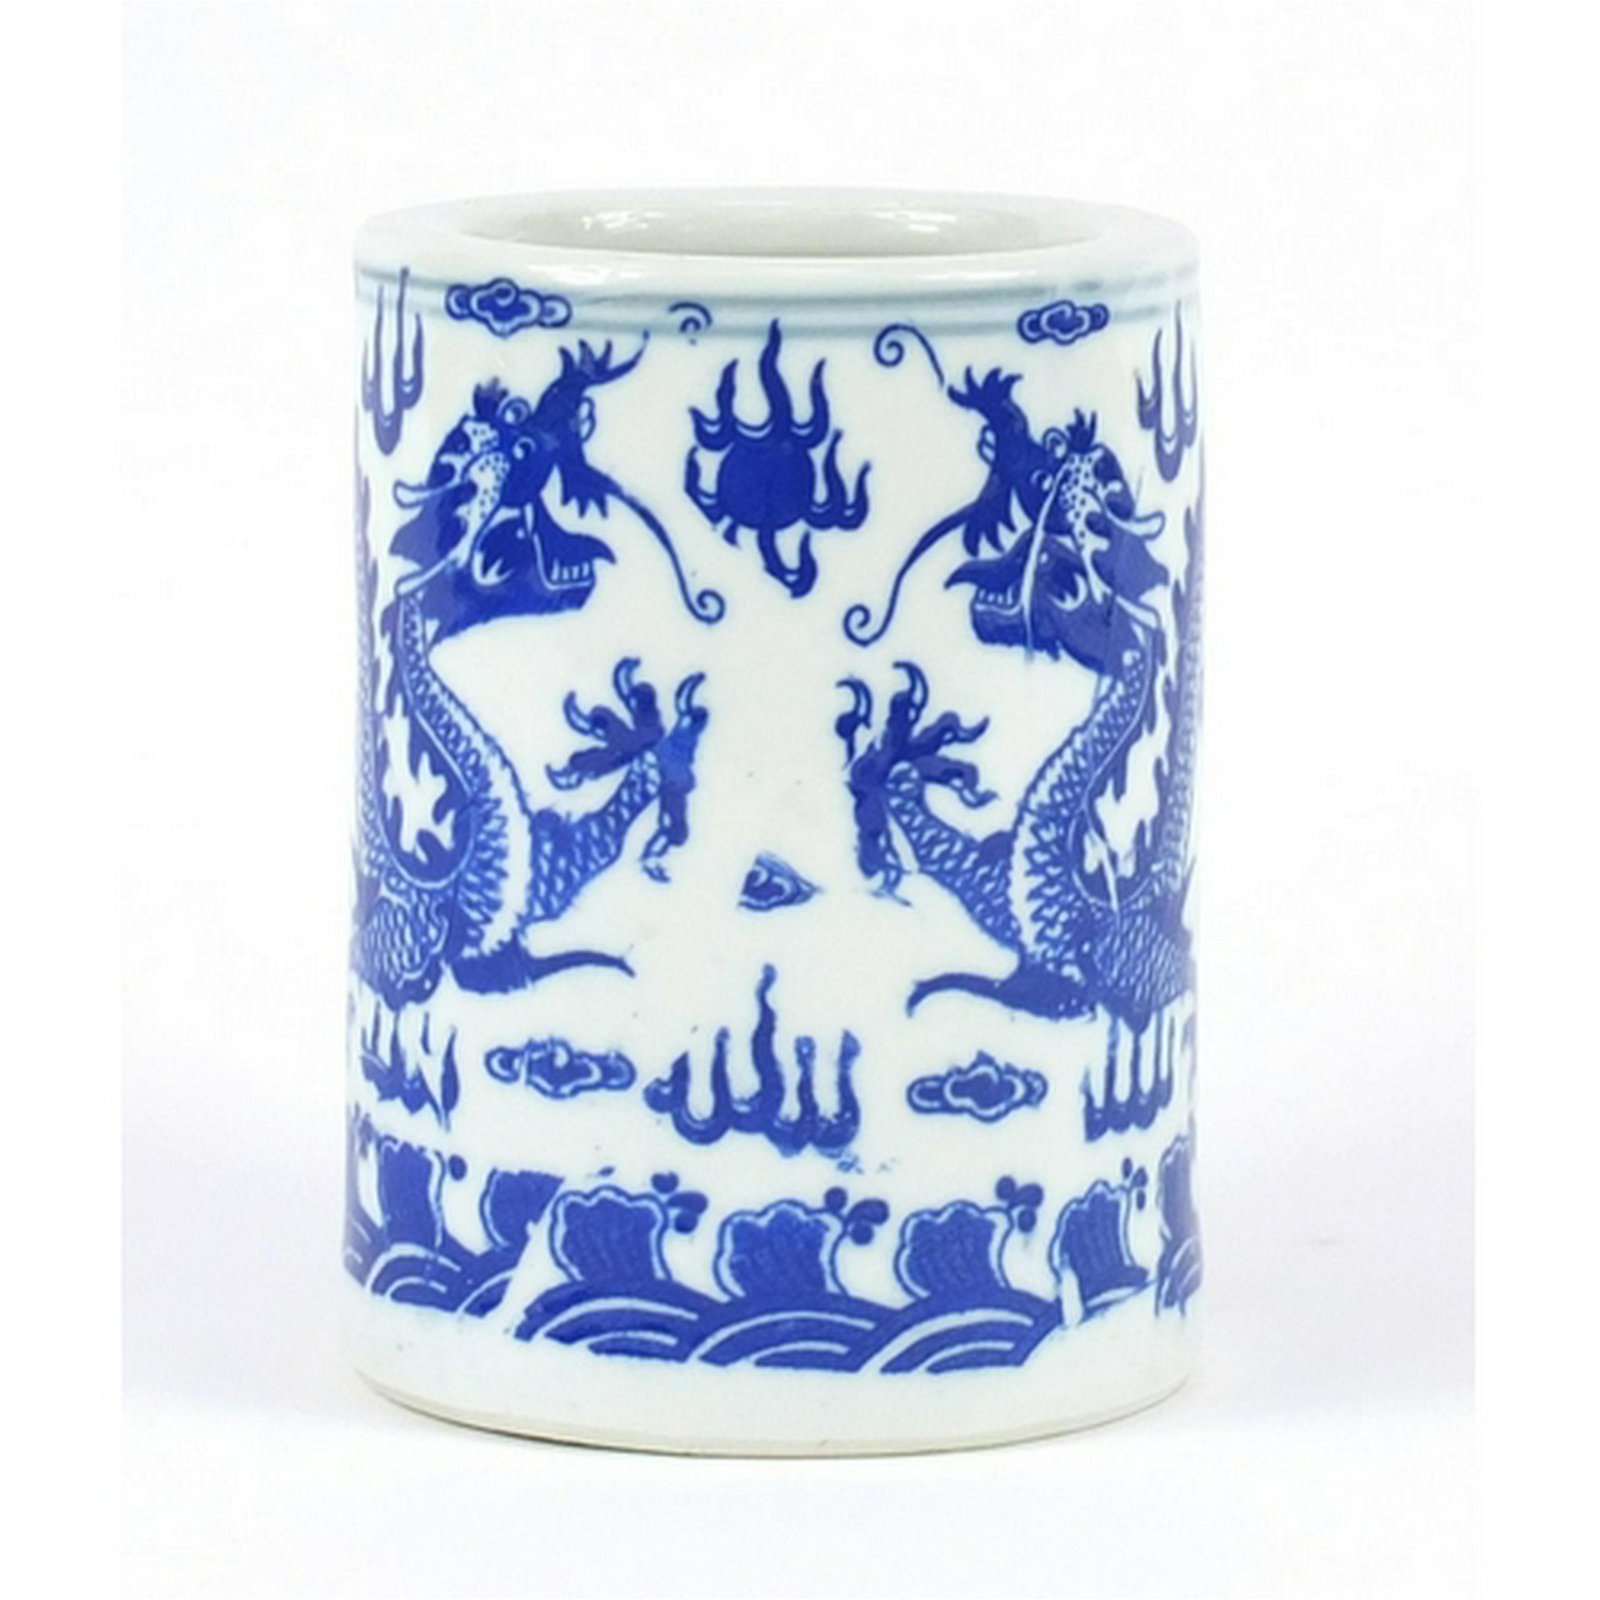 Chinese blue and white porcelain brush pot, decorated